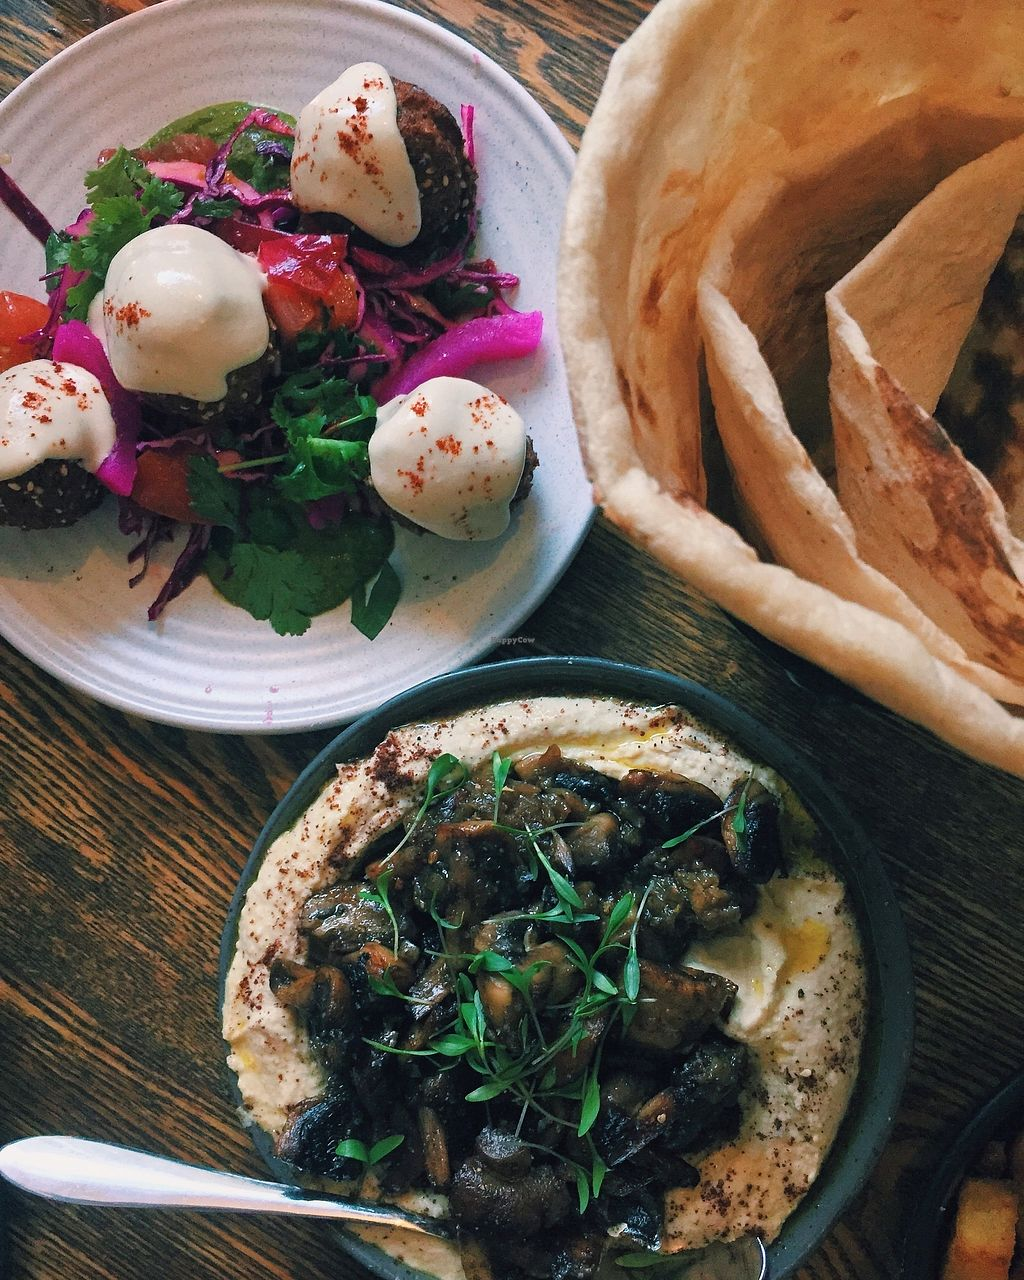 """Photo of The Hummus Club  by <a href=""""/members/profile/caitjoy"""">caitjoy</a> <br/>mushroom hummus and falafels <br/> January 5, 2018  - <a href='/contact/abuse/image/92106/343208'>Report</a>"""